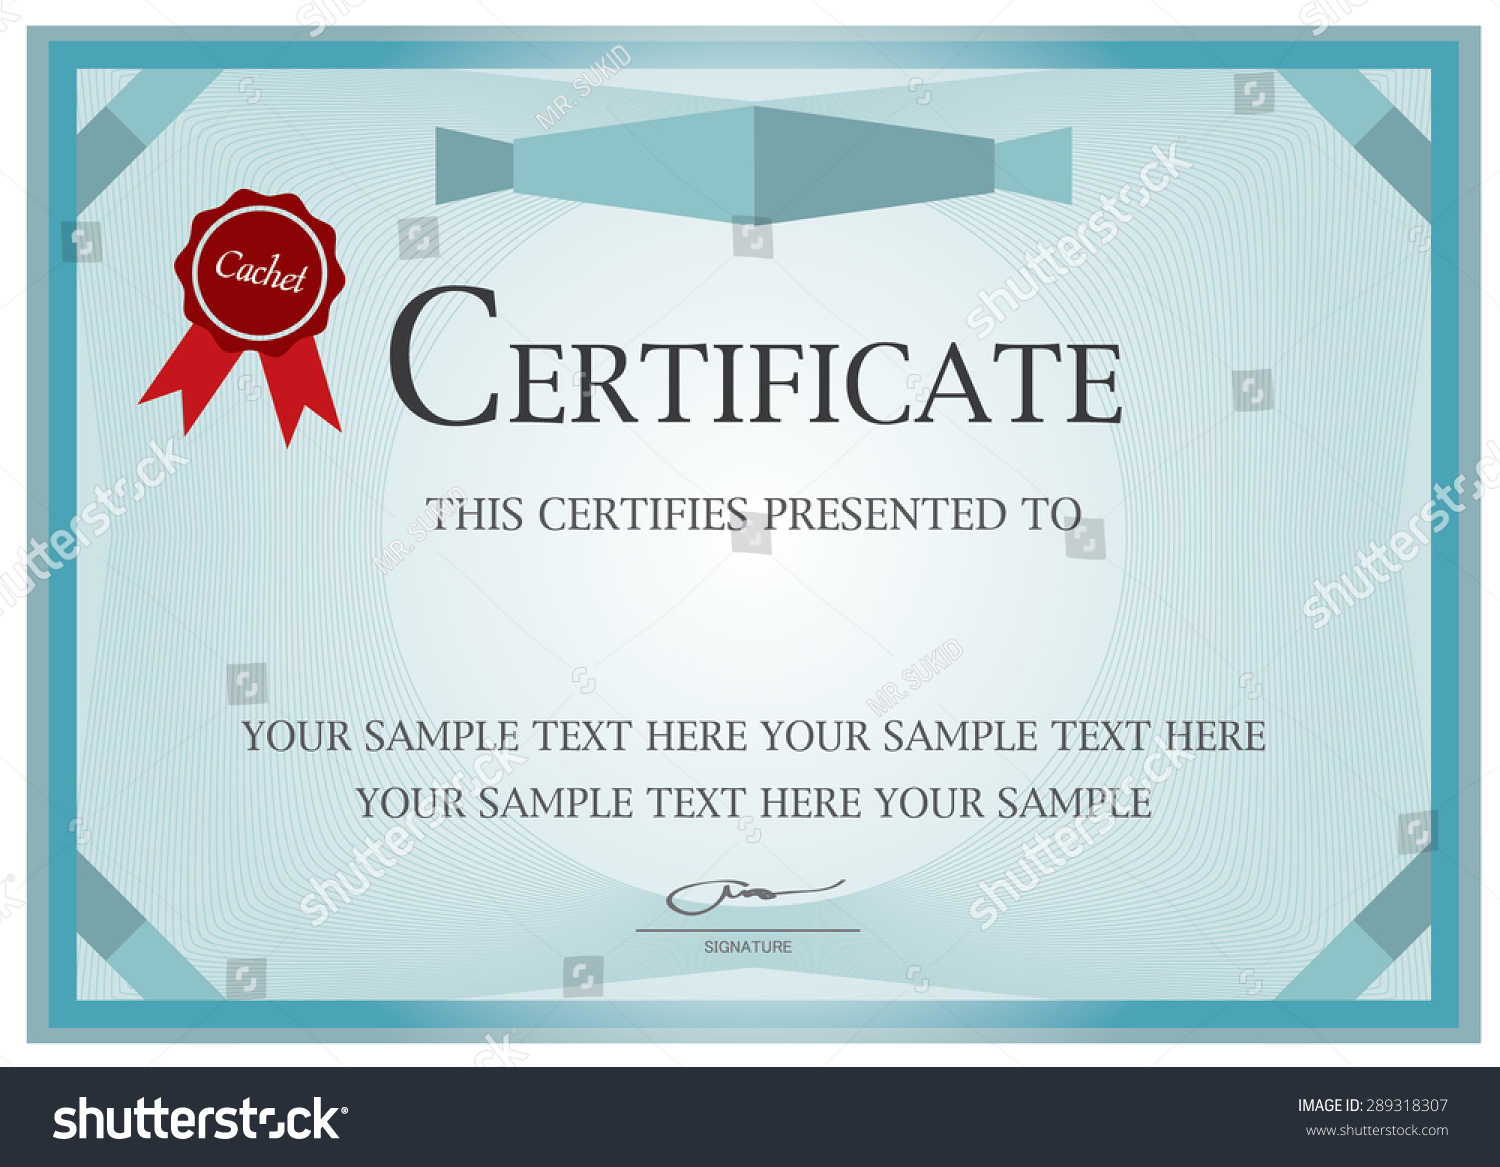 Certificate diploma background template pattern payroll slip certificate diploma completion design template background stock stock vector certificate diploma of completion design template background xflitez Choice Image